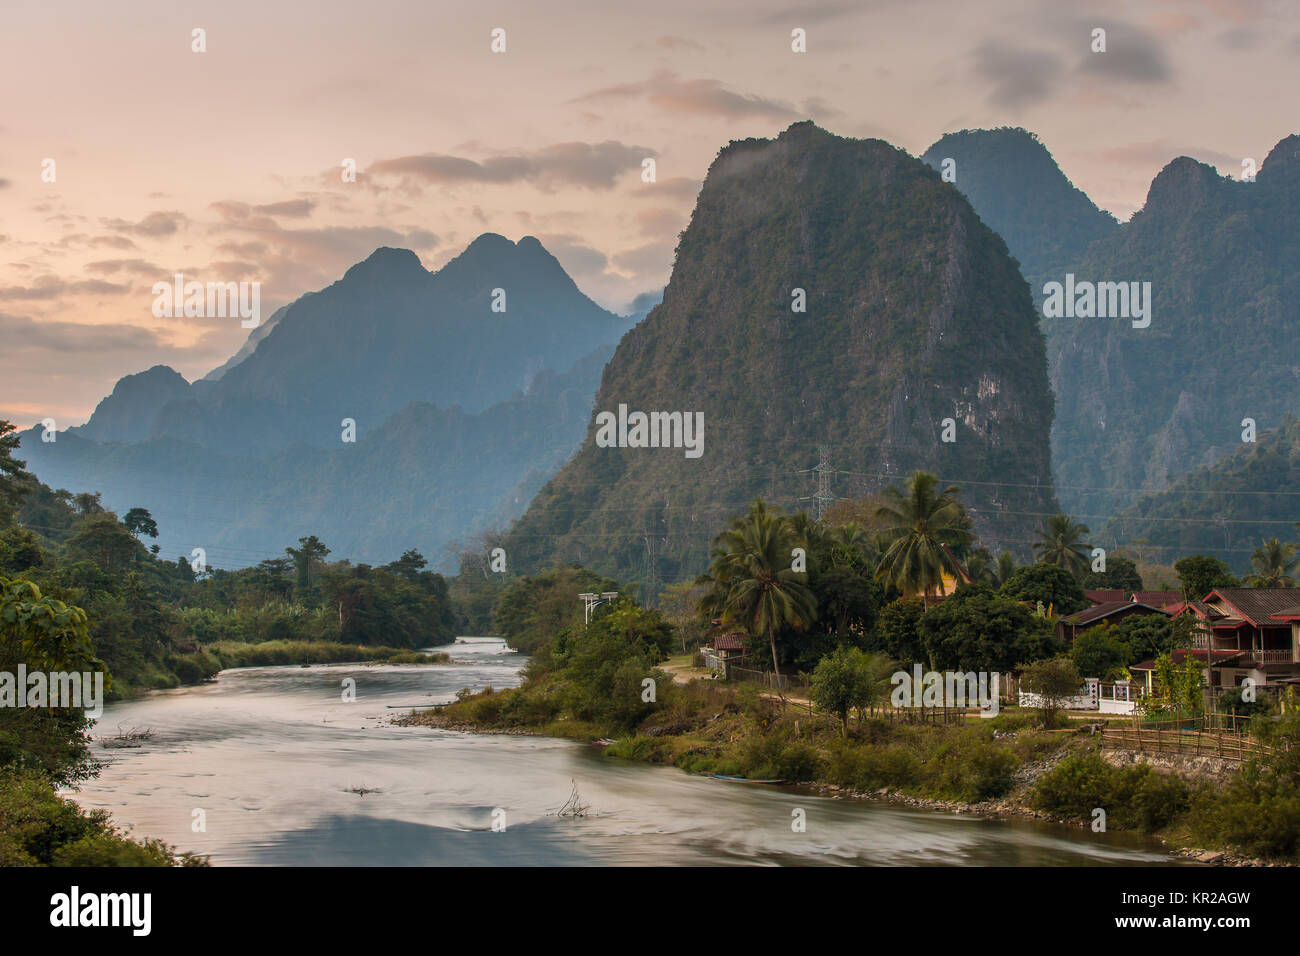 Beautiful sunrise over the Nam Song river near the Vang Vieng village, Laos - Stock Image